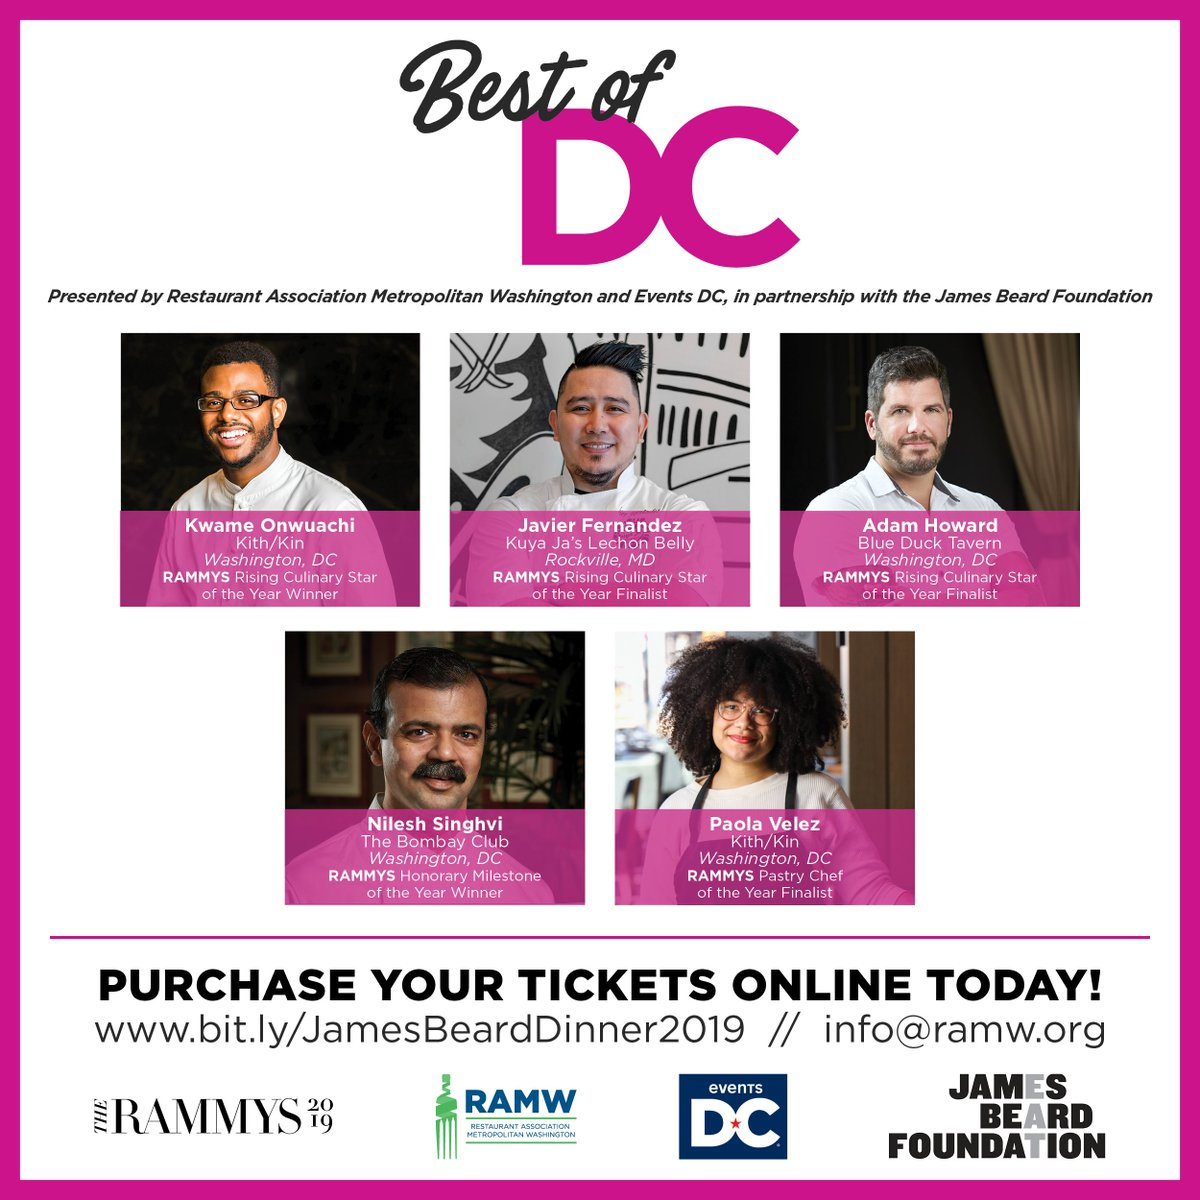 "So much talent, one room! We're bringing 5 #RAMMYS19 finalists to the @beardfoundation House with @TheEventsDC Tues 8/20 for one night only //  SPACE IS LIMITED - purchase tix to experience the #RAMMYS19 ""Best of DC"" spotlight dinner today!     https:// bit.ly/JamesBeardDinn er2019   … <br>http://pic.twitter.com/HmAtpZr5Cq"